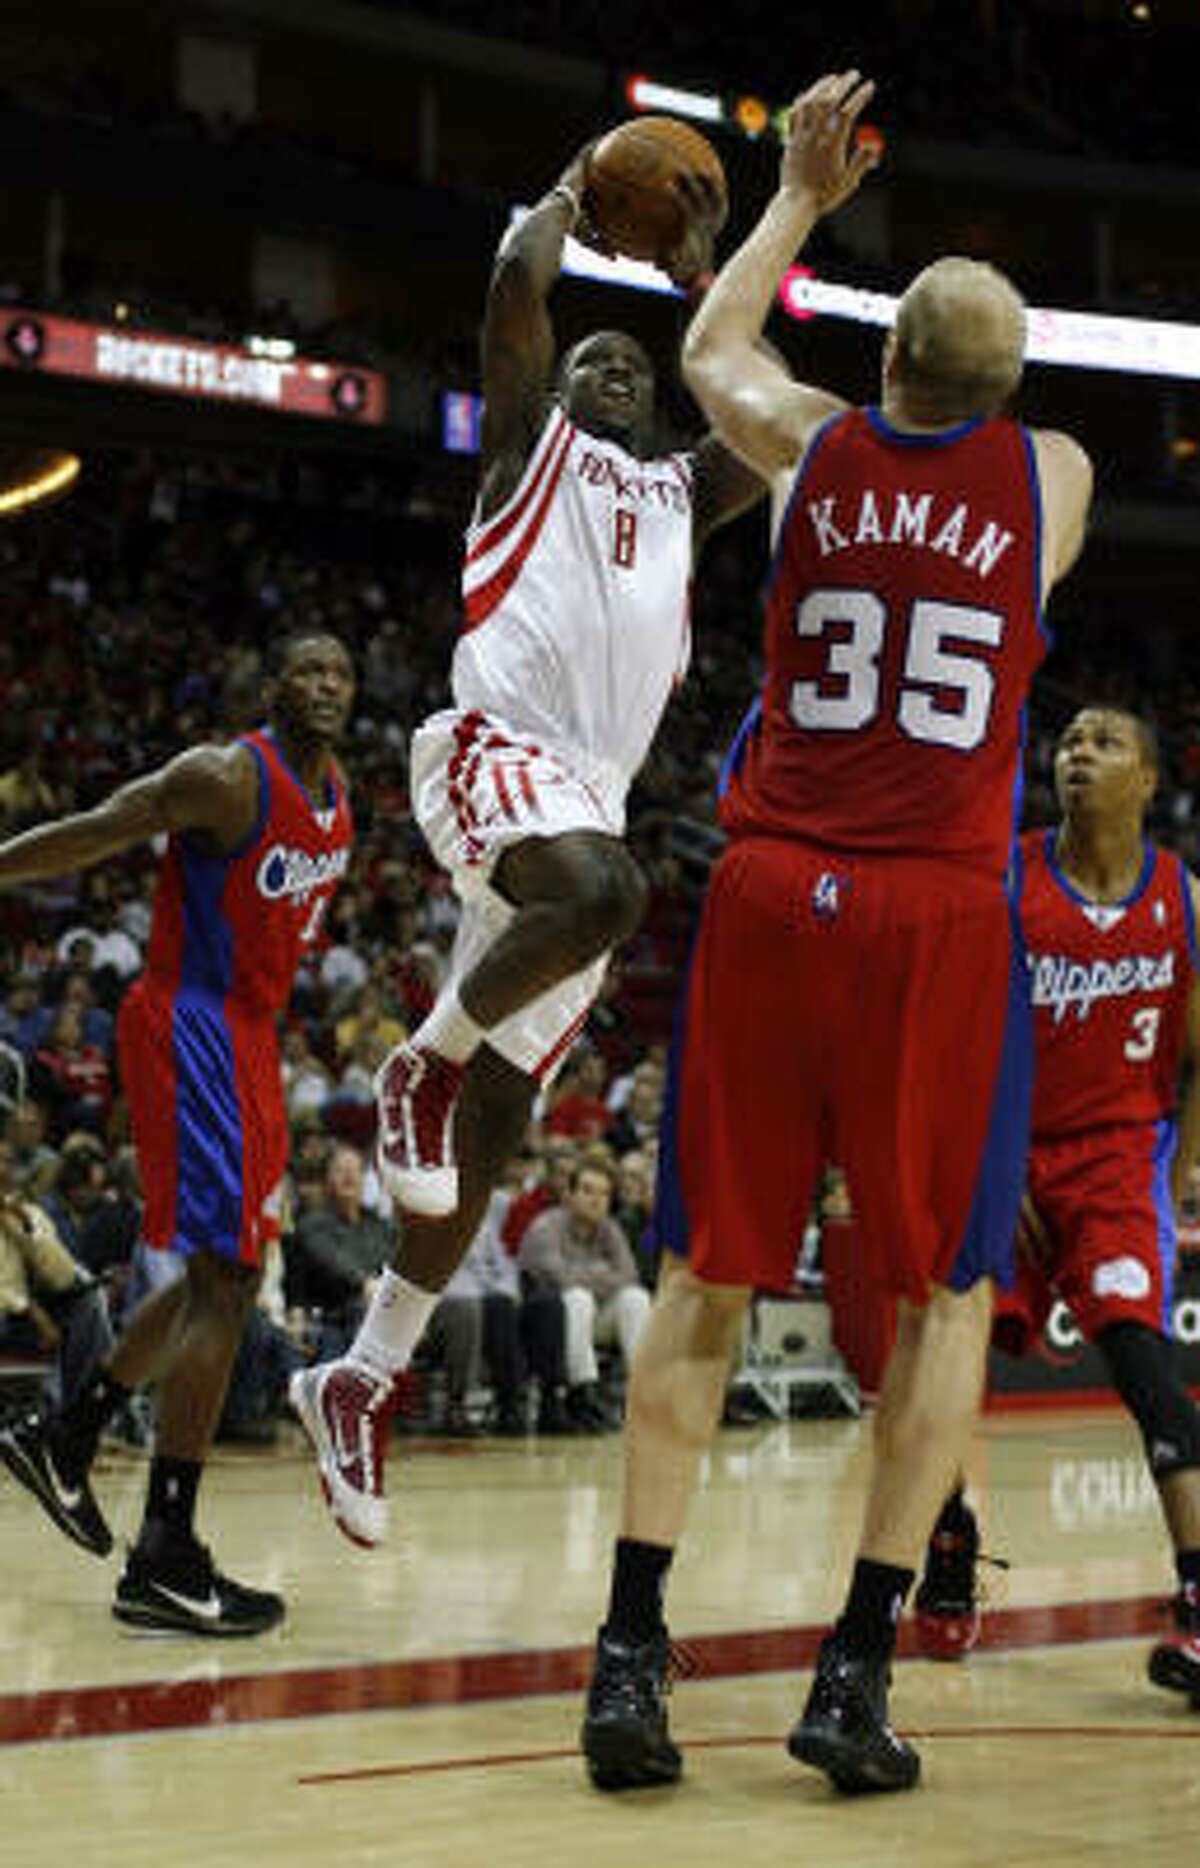 Rockets guard Jermaine Taylor has made the most of his opportunities during his rookie season.